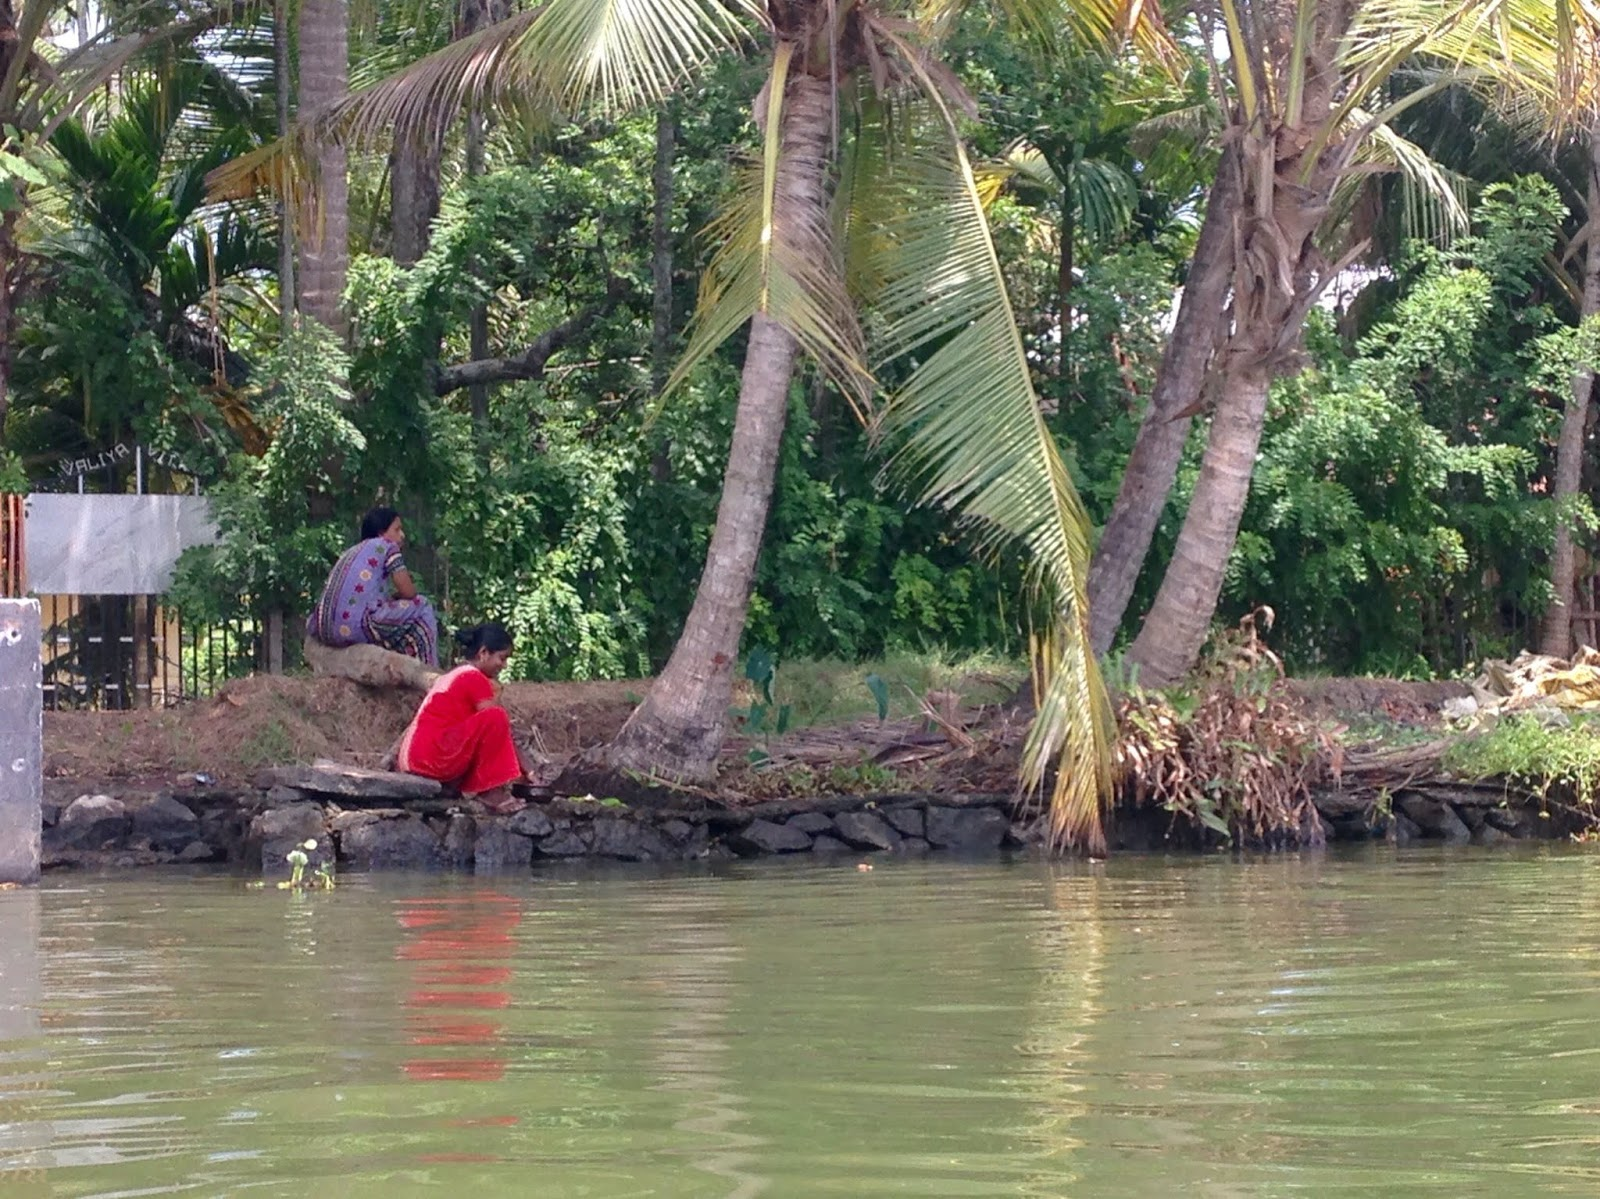 Residents in Alleppey